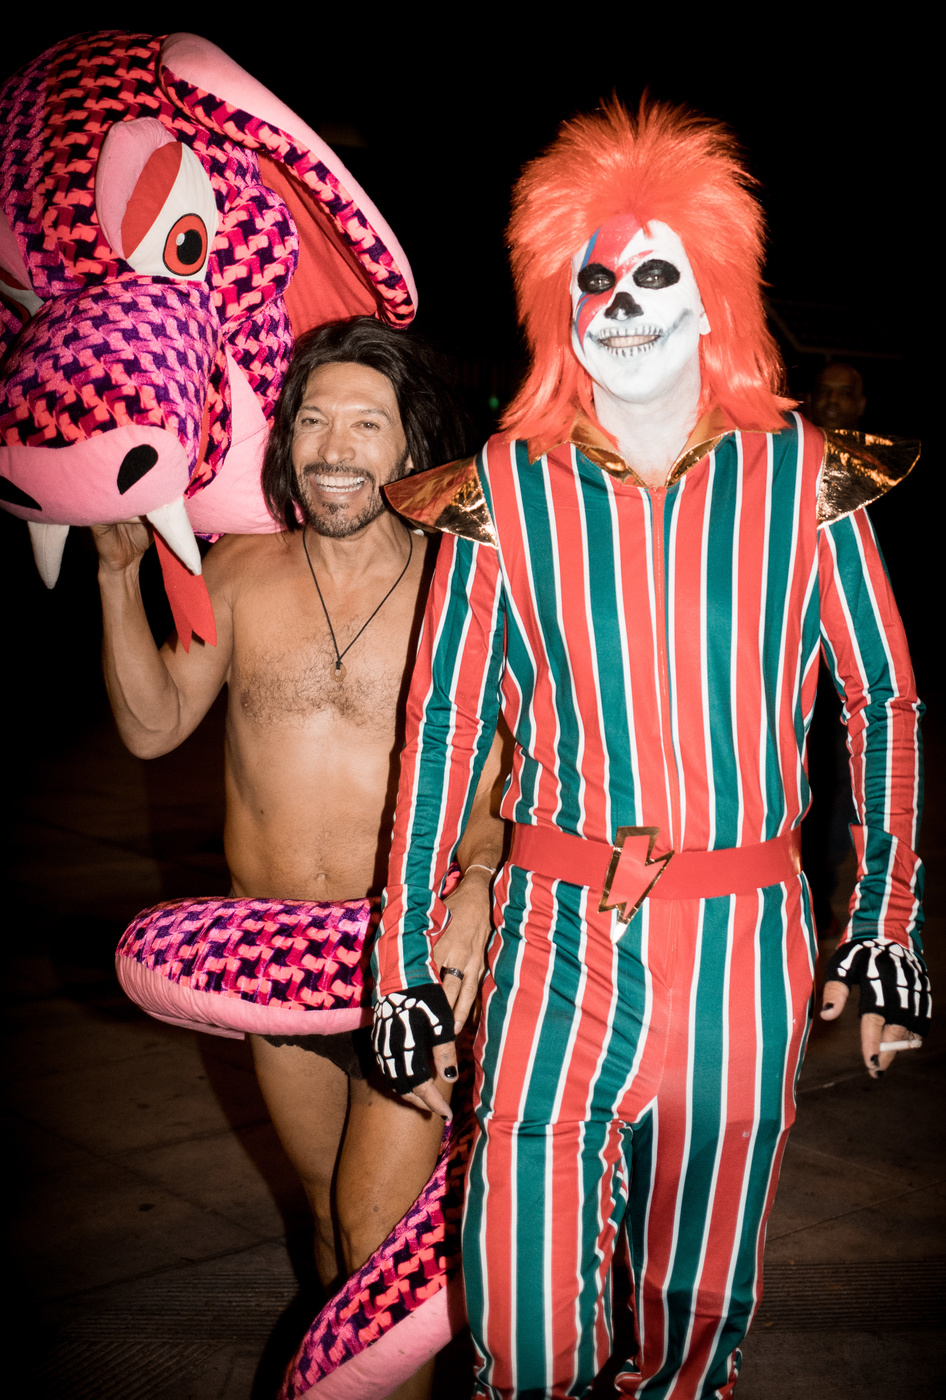 West Hollywood Halloween Carnaval on October 31, 2017 in Los Angeles, California.